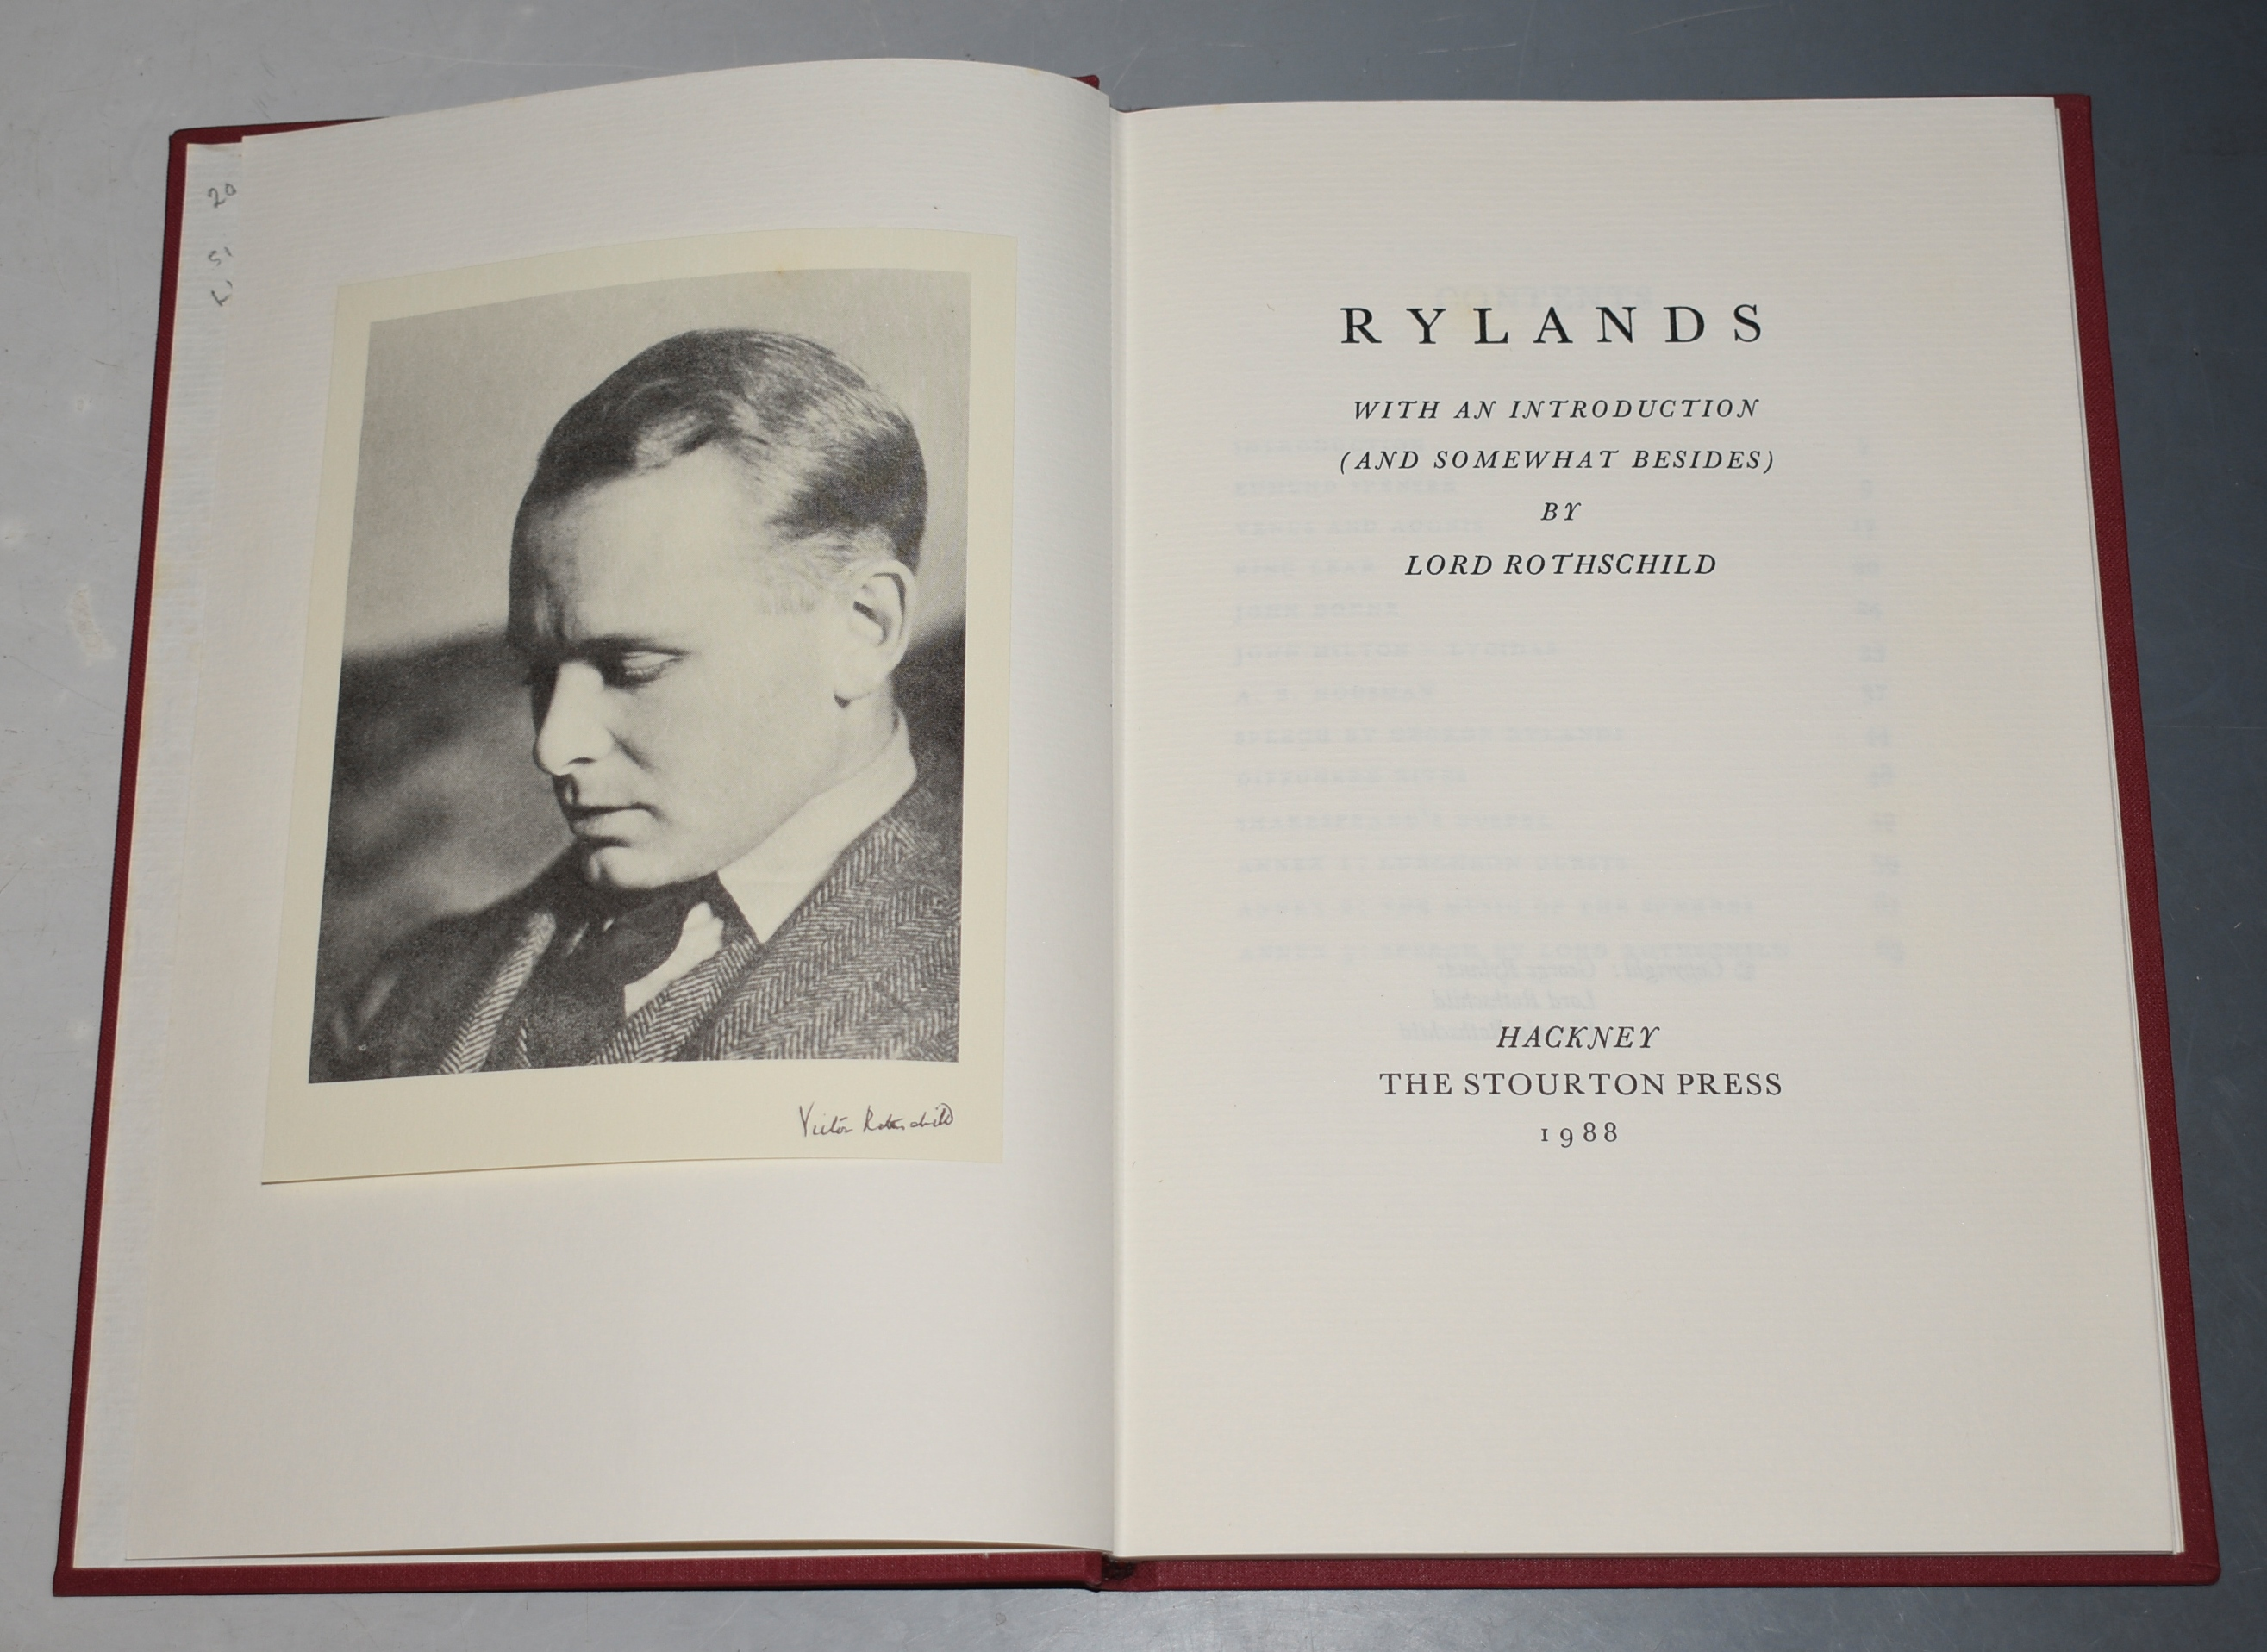 Image for Rylands. With an introduction (and somewhat besides) by Lord Rothschild. Signed limited edition.